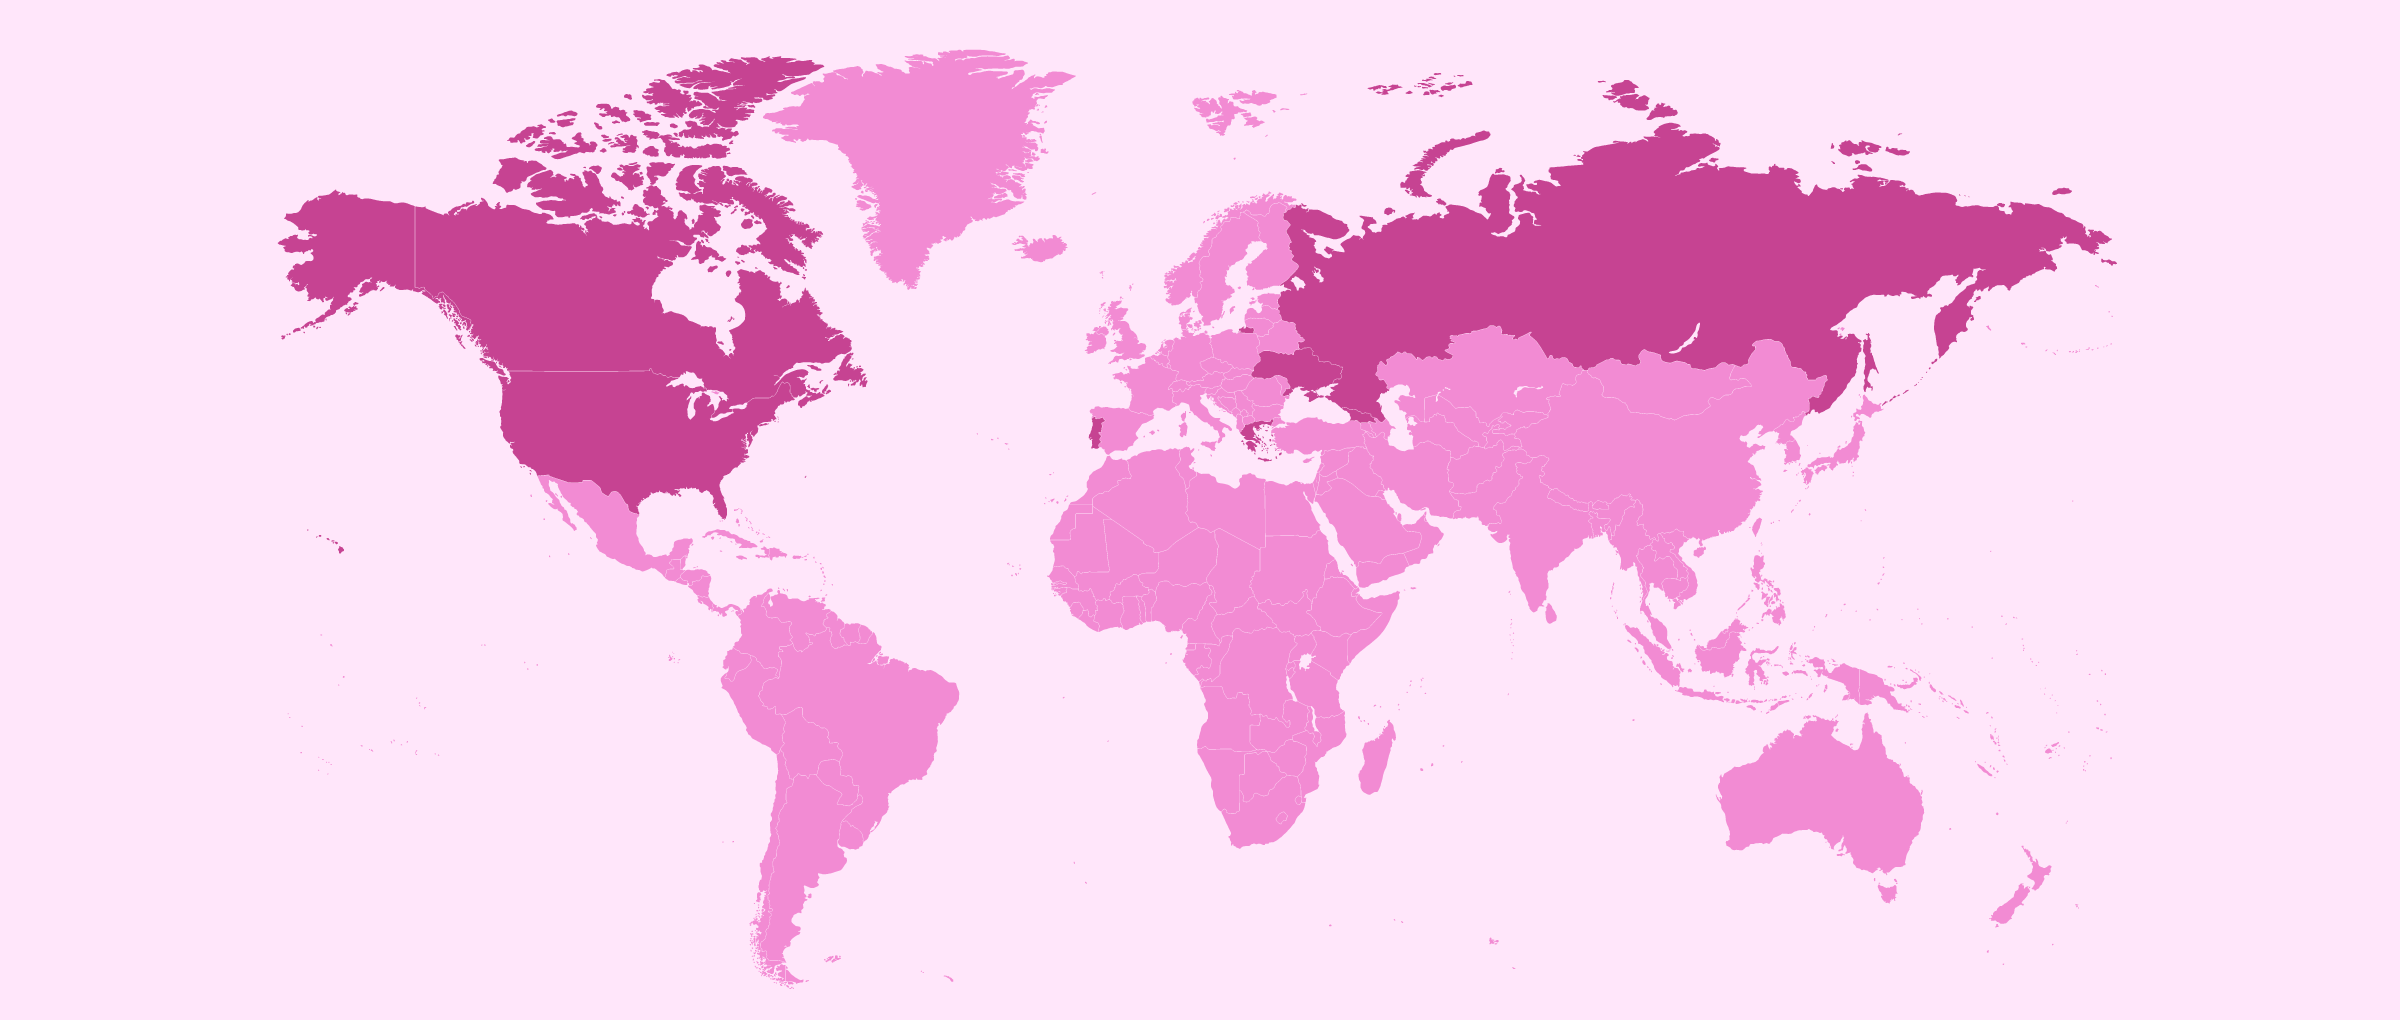 Surrogacy Laws by Country - Where Is It Legal?